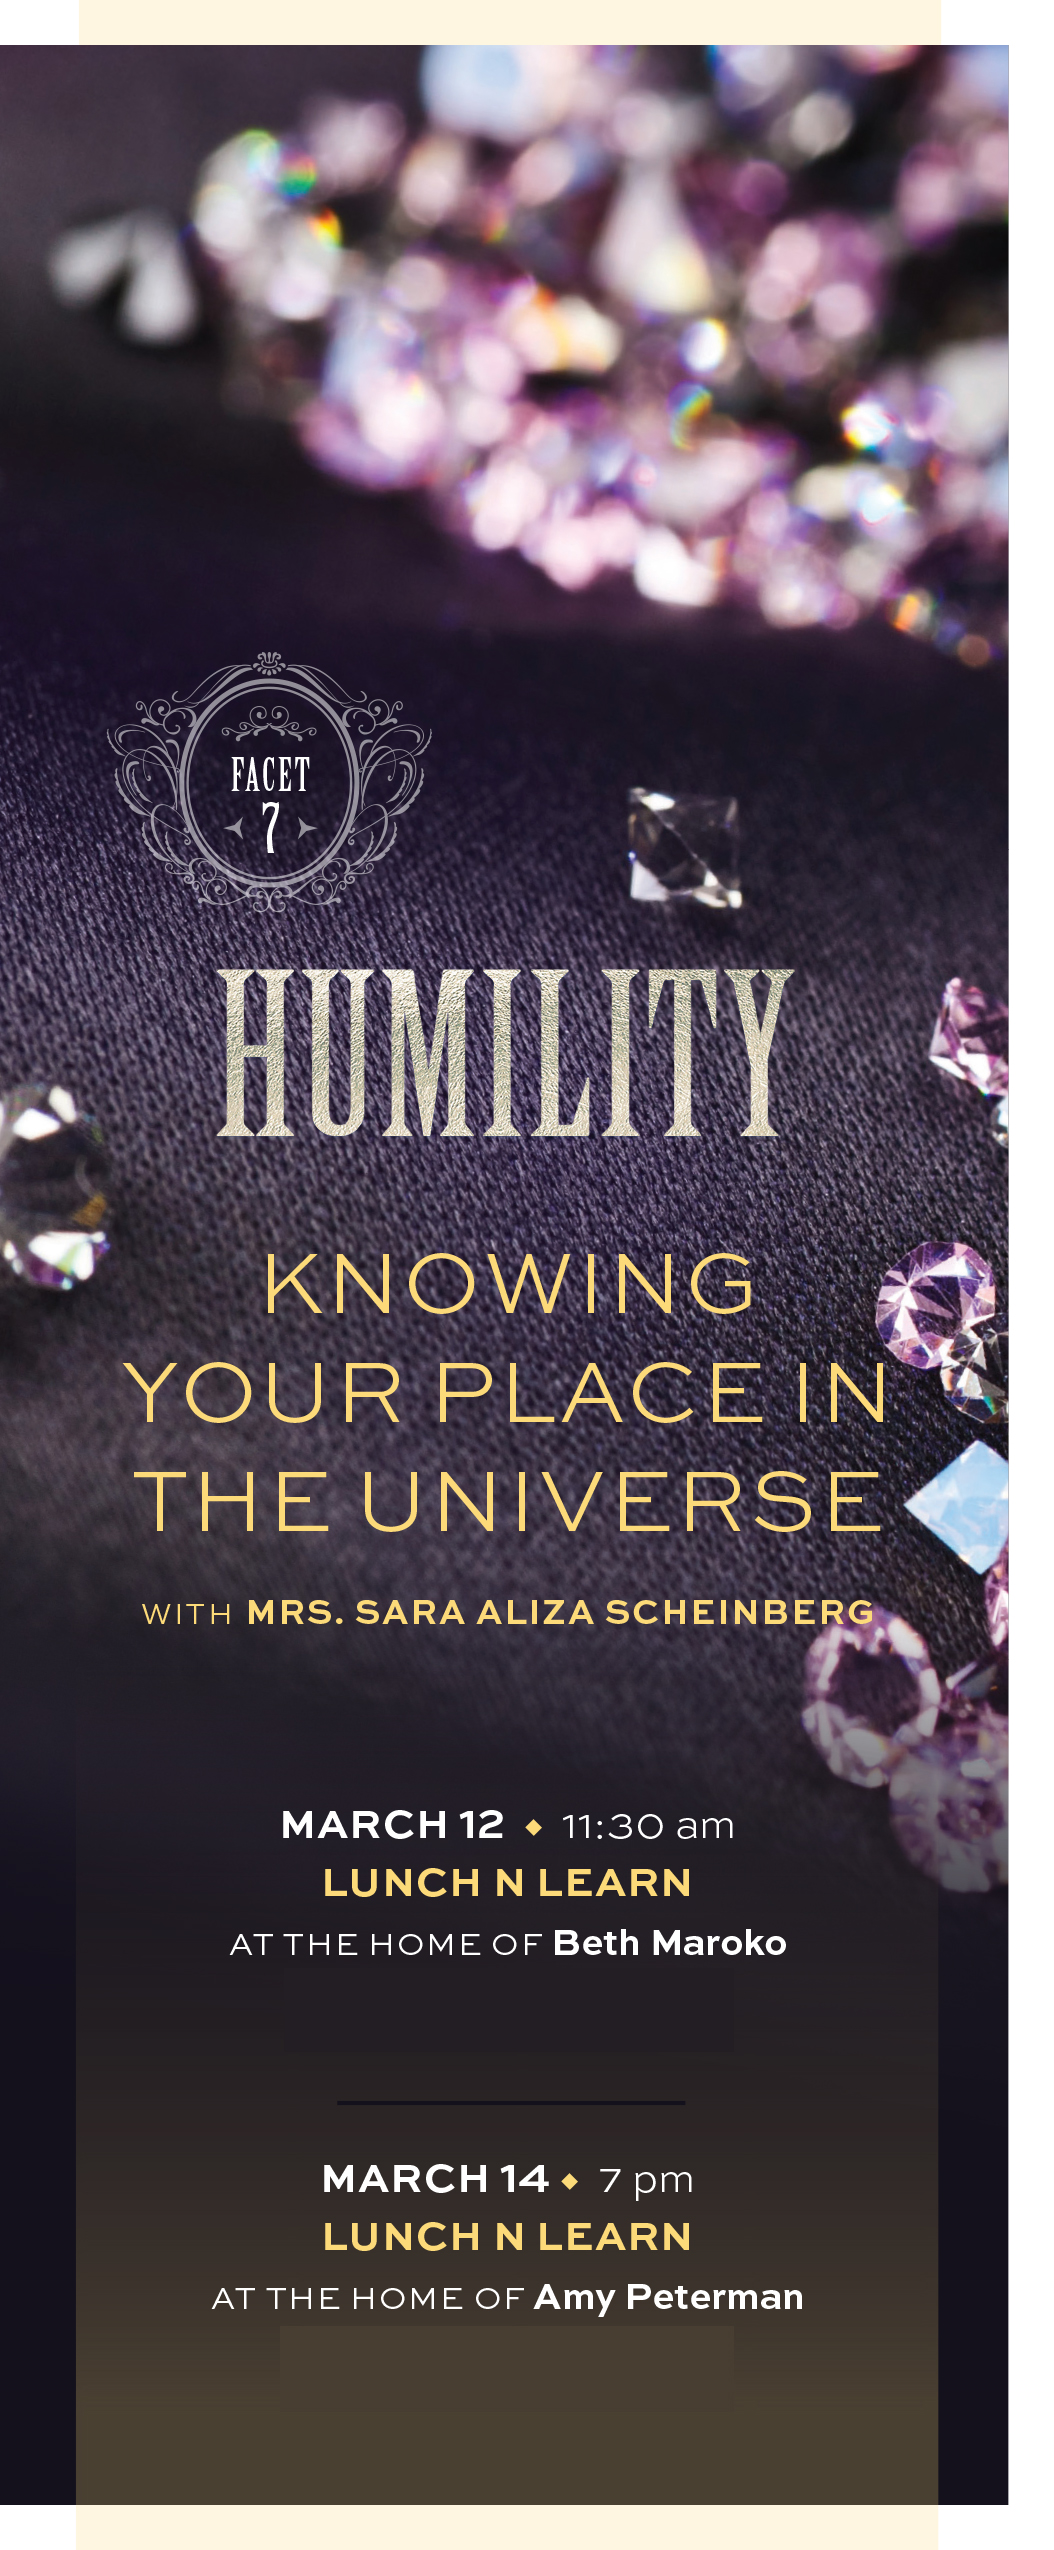 Facets - Humility: Knowing Your Place in the Universe Lunch 'n Learn